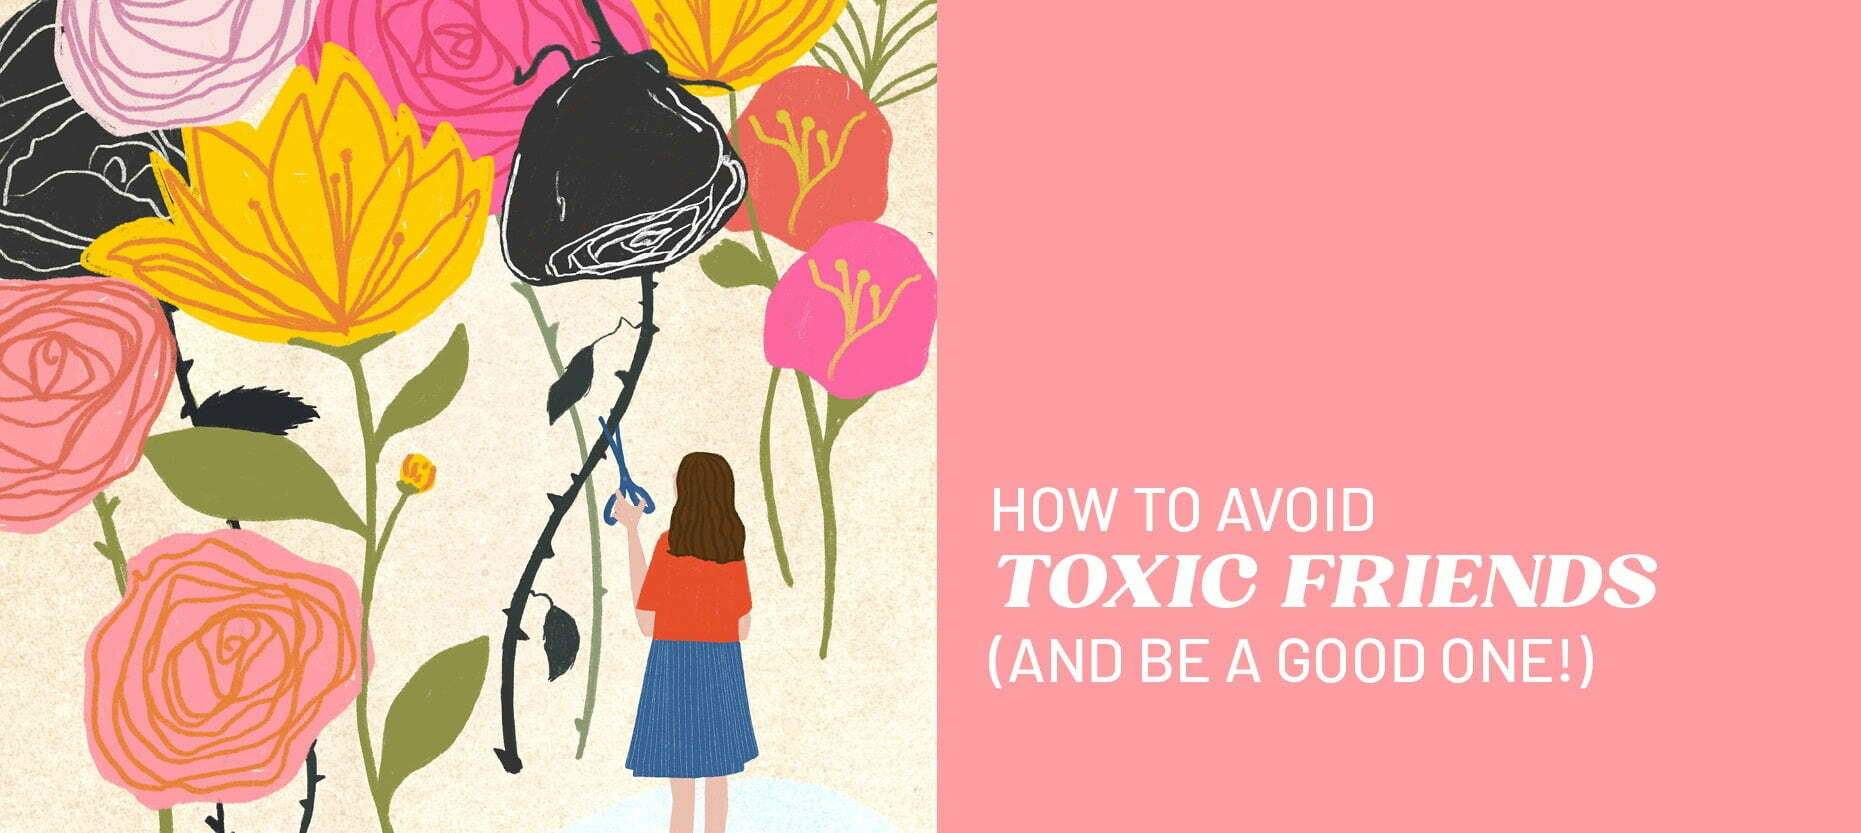 How to Avoid Toxic Friends (And Be a Good One!)